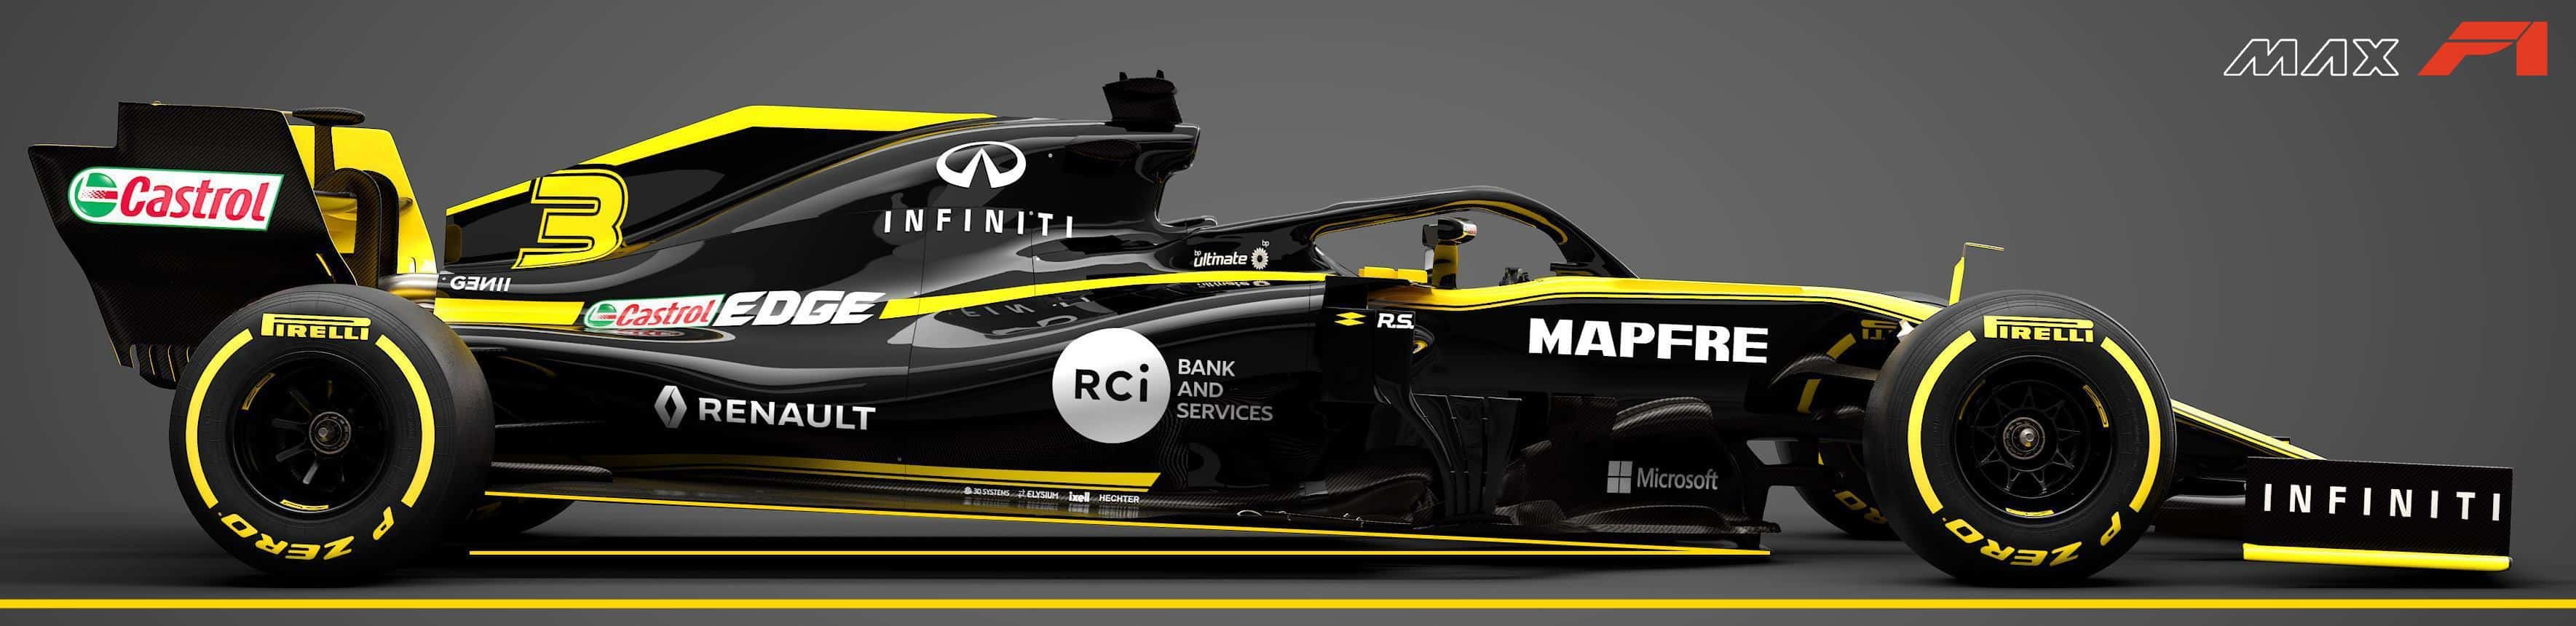 2019 Renault RS19 side view big rake edited by MAXF1net